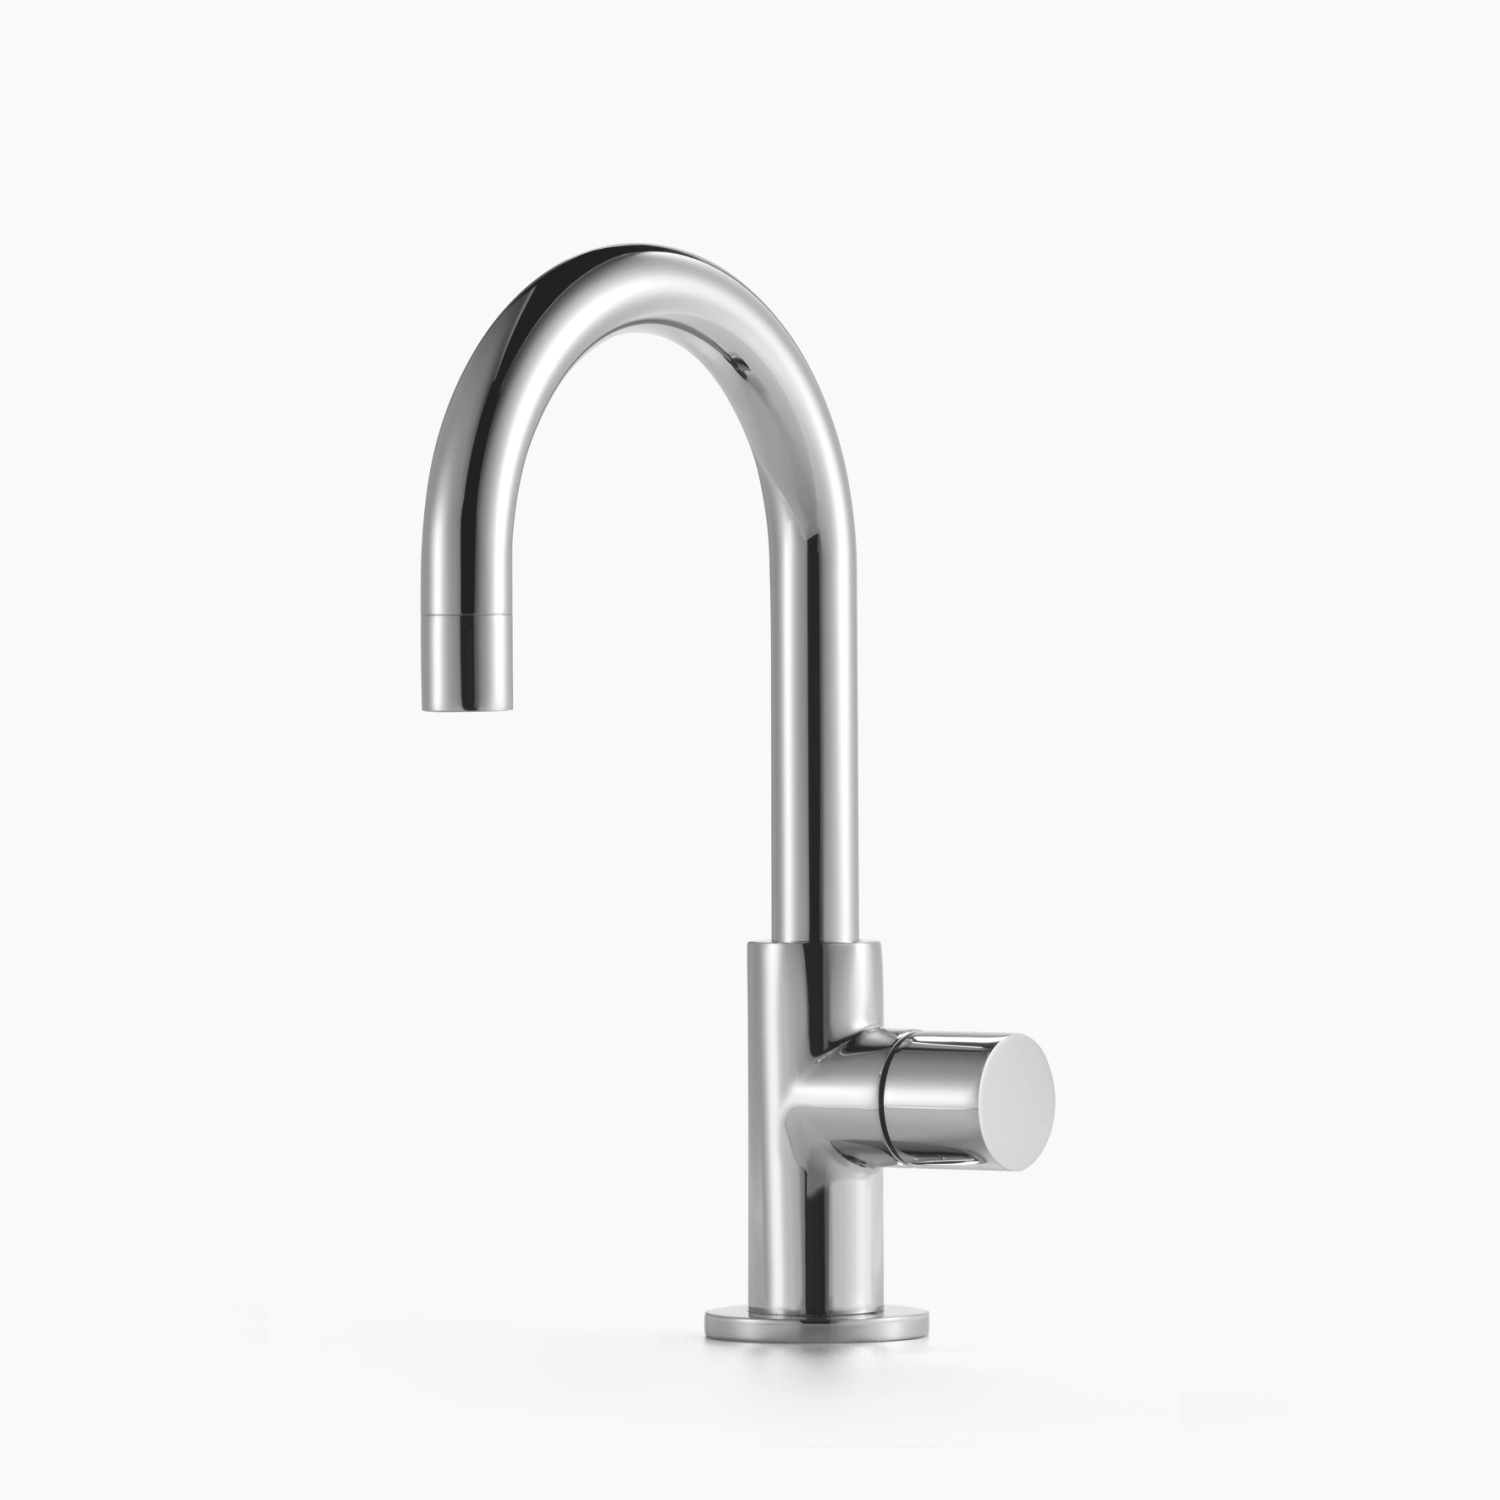 Pillar tap cold water - polished chrome